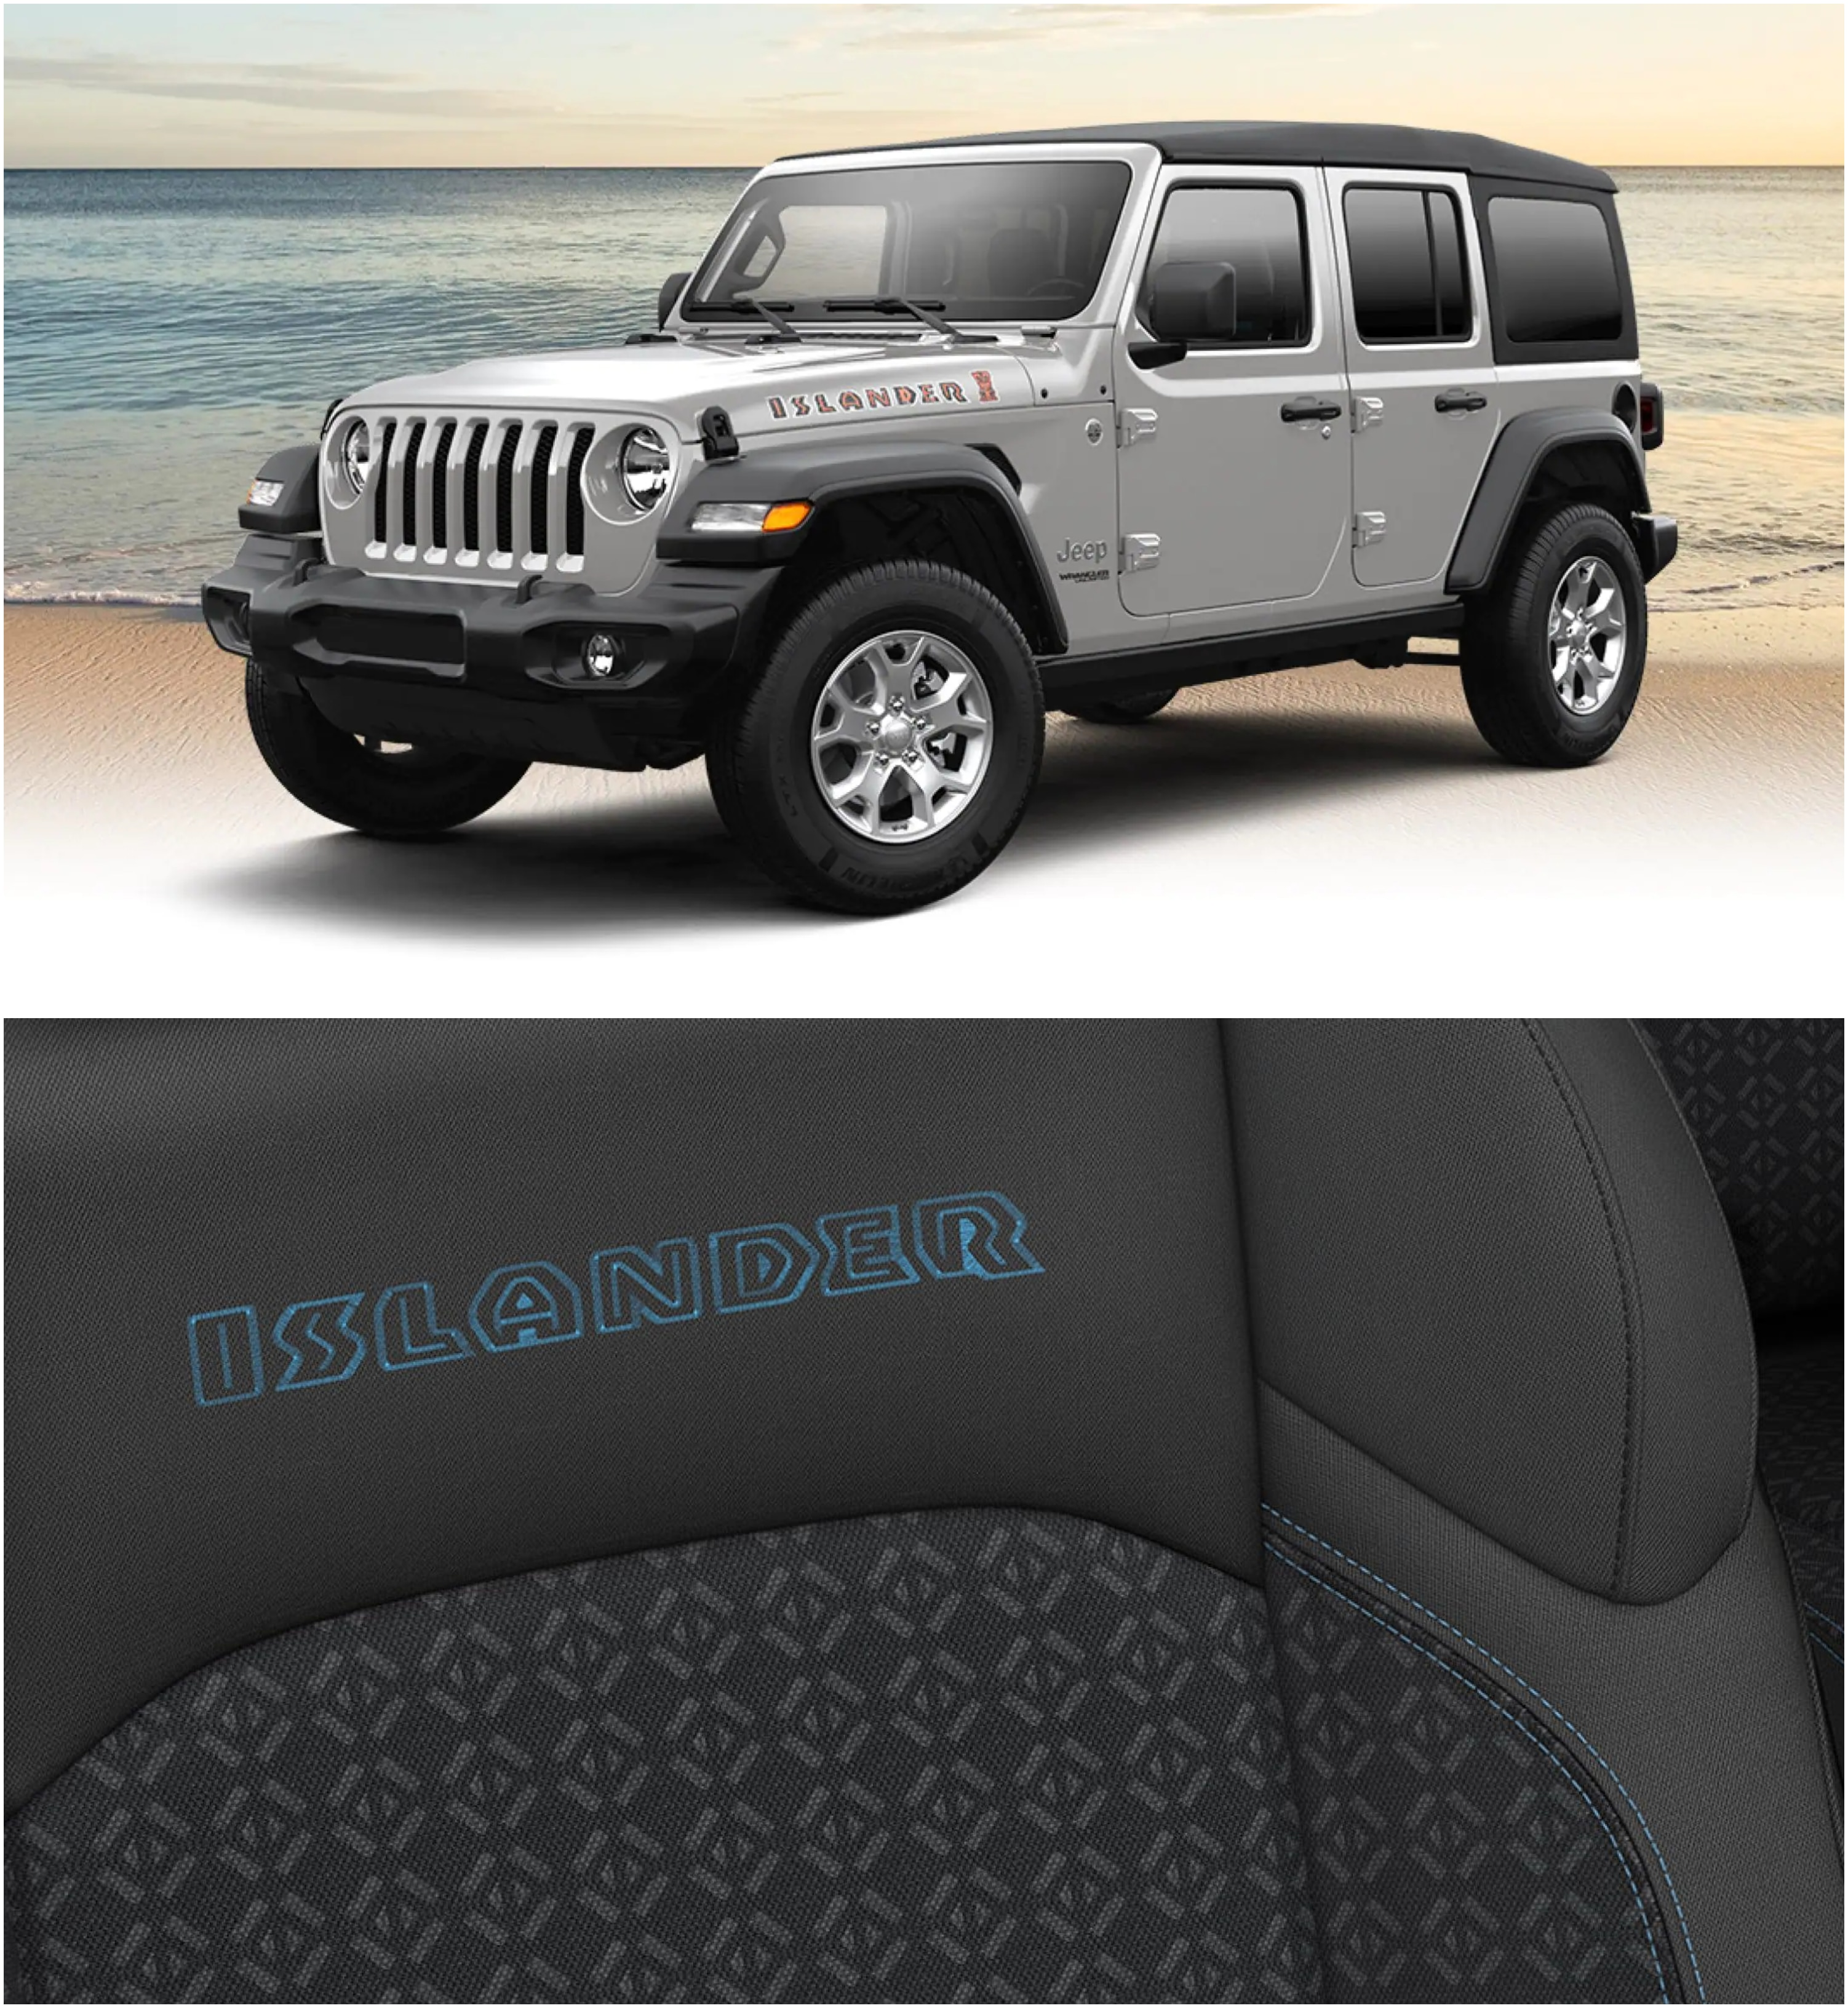 """Top Photo: Front 3/4 View of Silver Jeep Wrangler Islander ; Bottom Photo: Close-up of Blue """"Islander"""" stitching on seat of Jeep"""